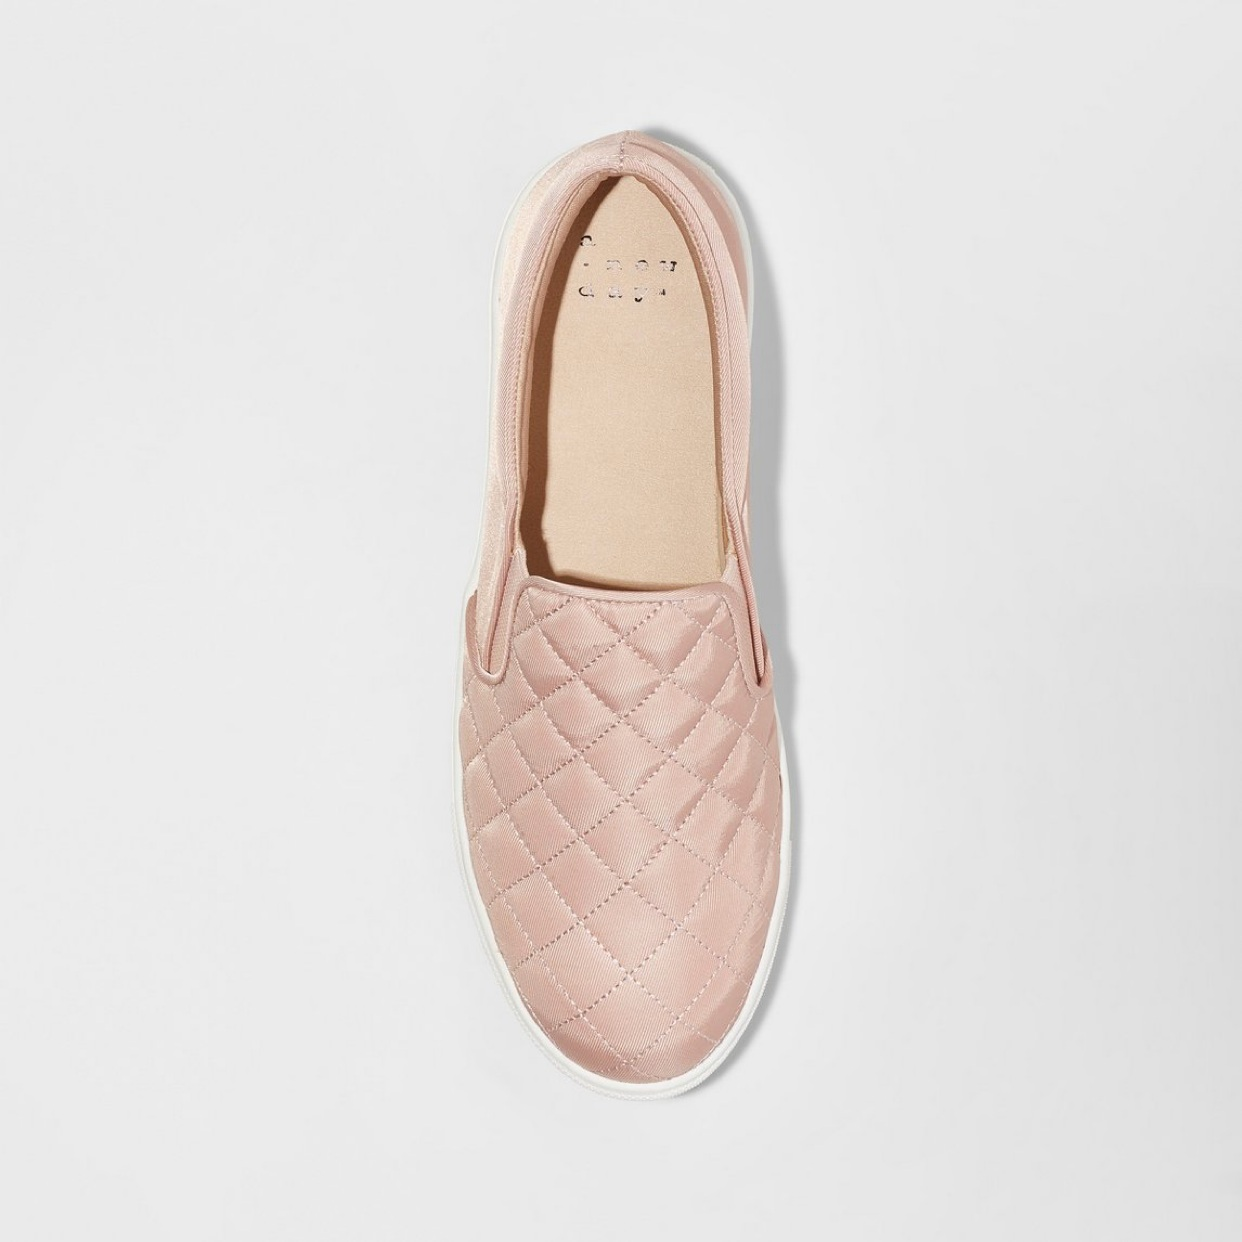 - Bought these this week and they are so comfy! Right now they are buy one get one 50% off too!Find them here.